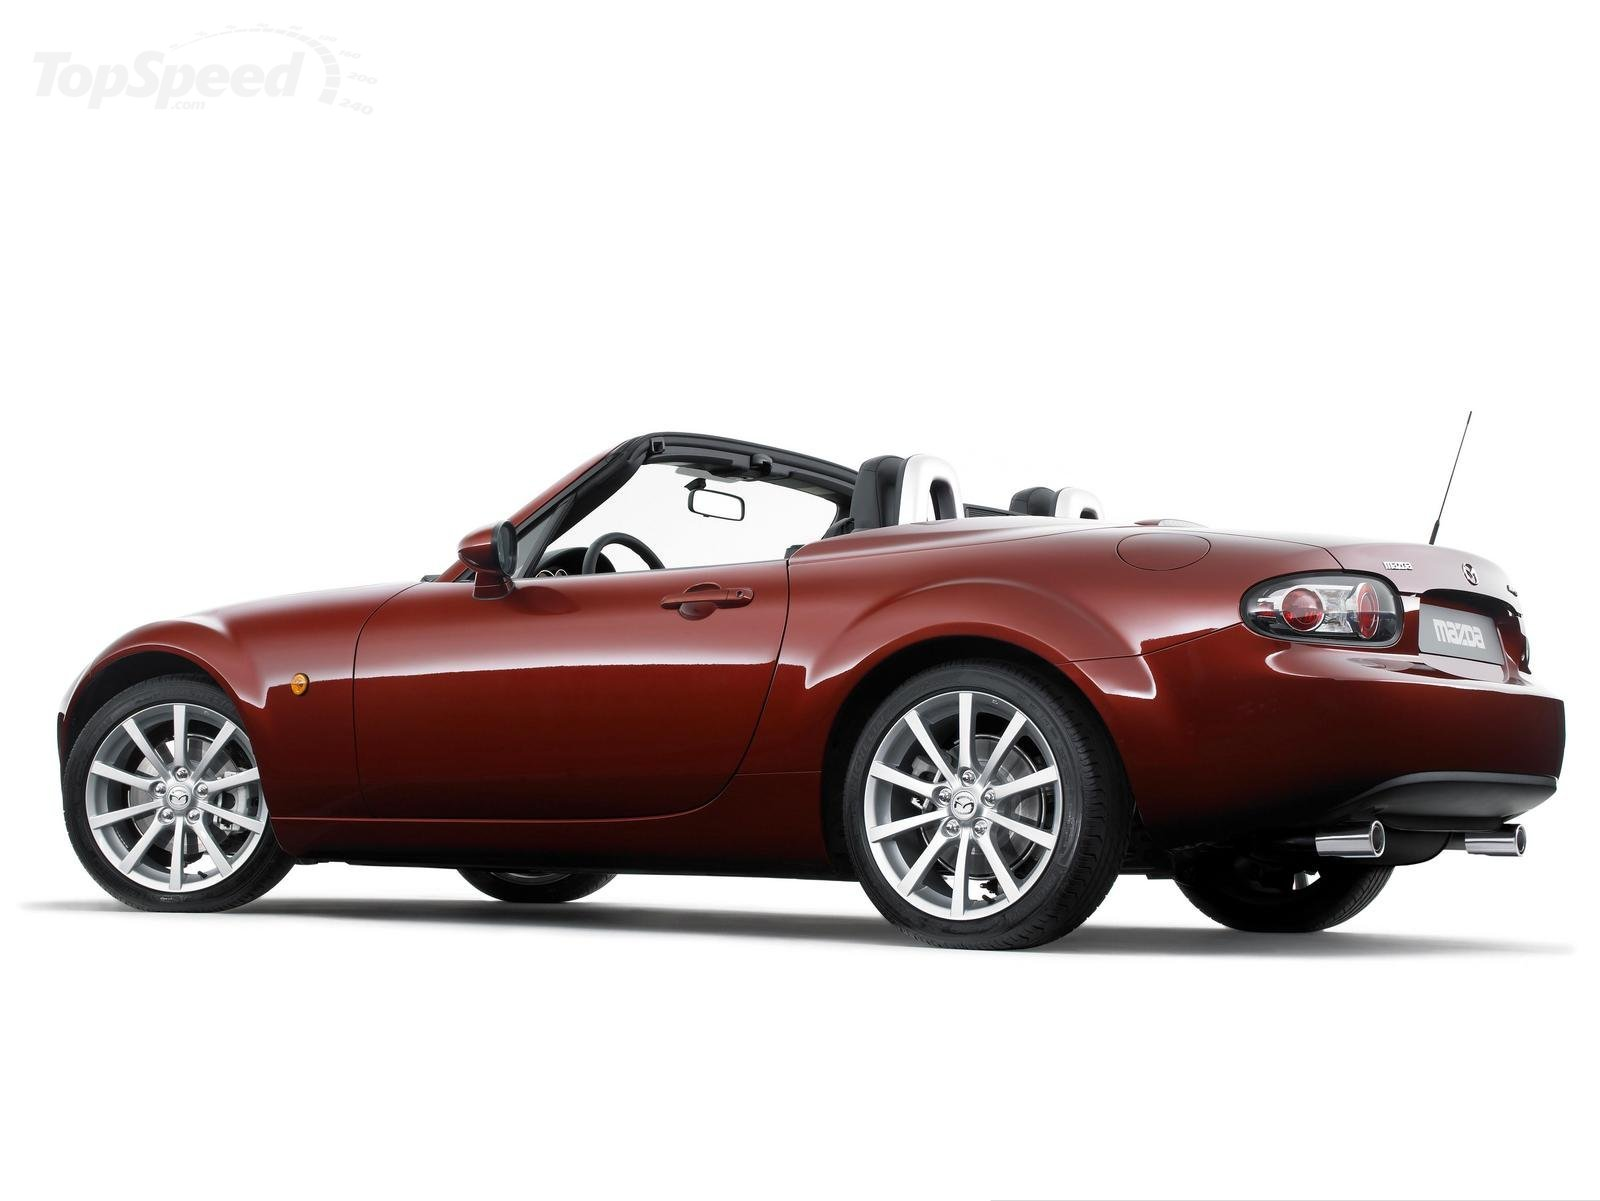 MAZDA MX 5 Roadster 1.8 i 16V 126. Car Technical Data. Power. Torque.